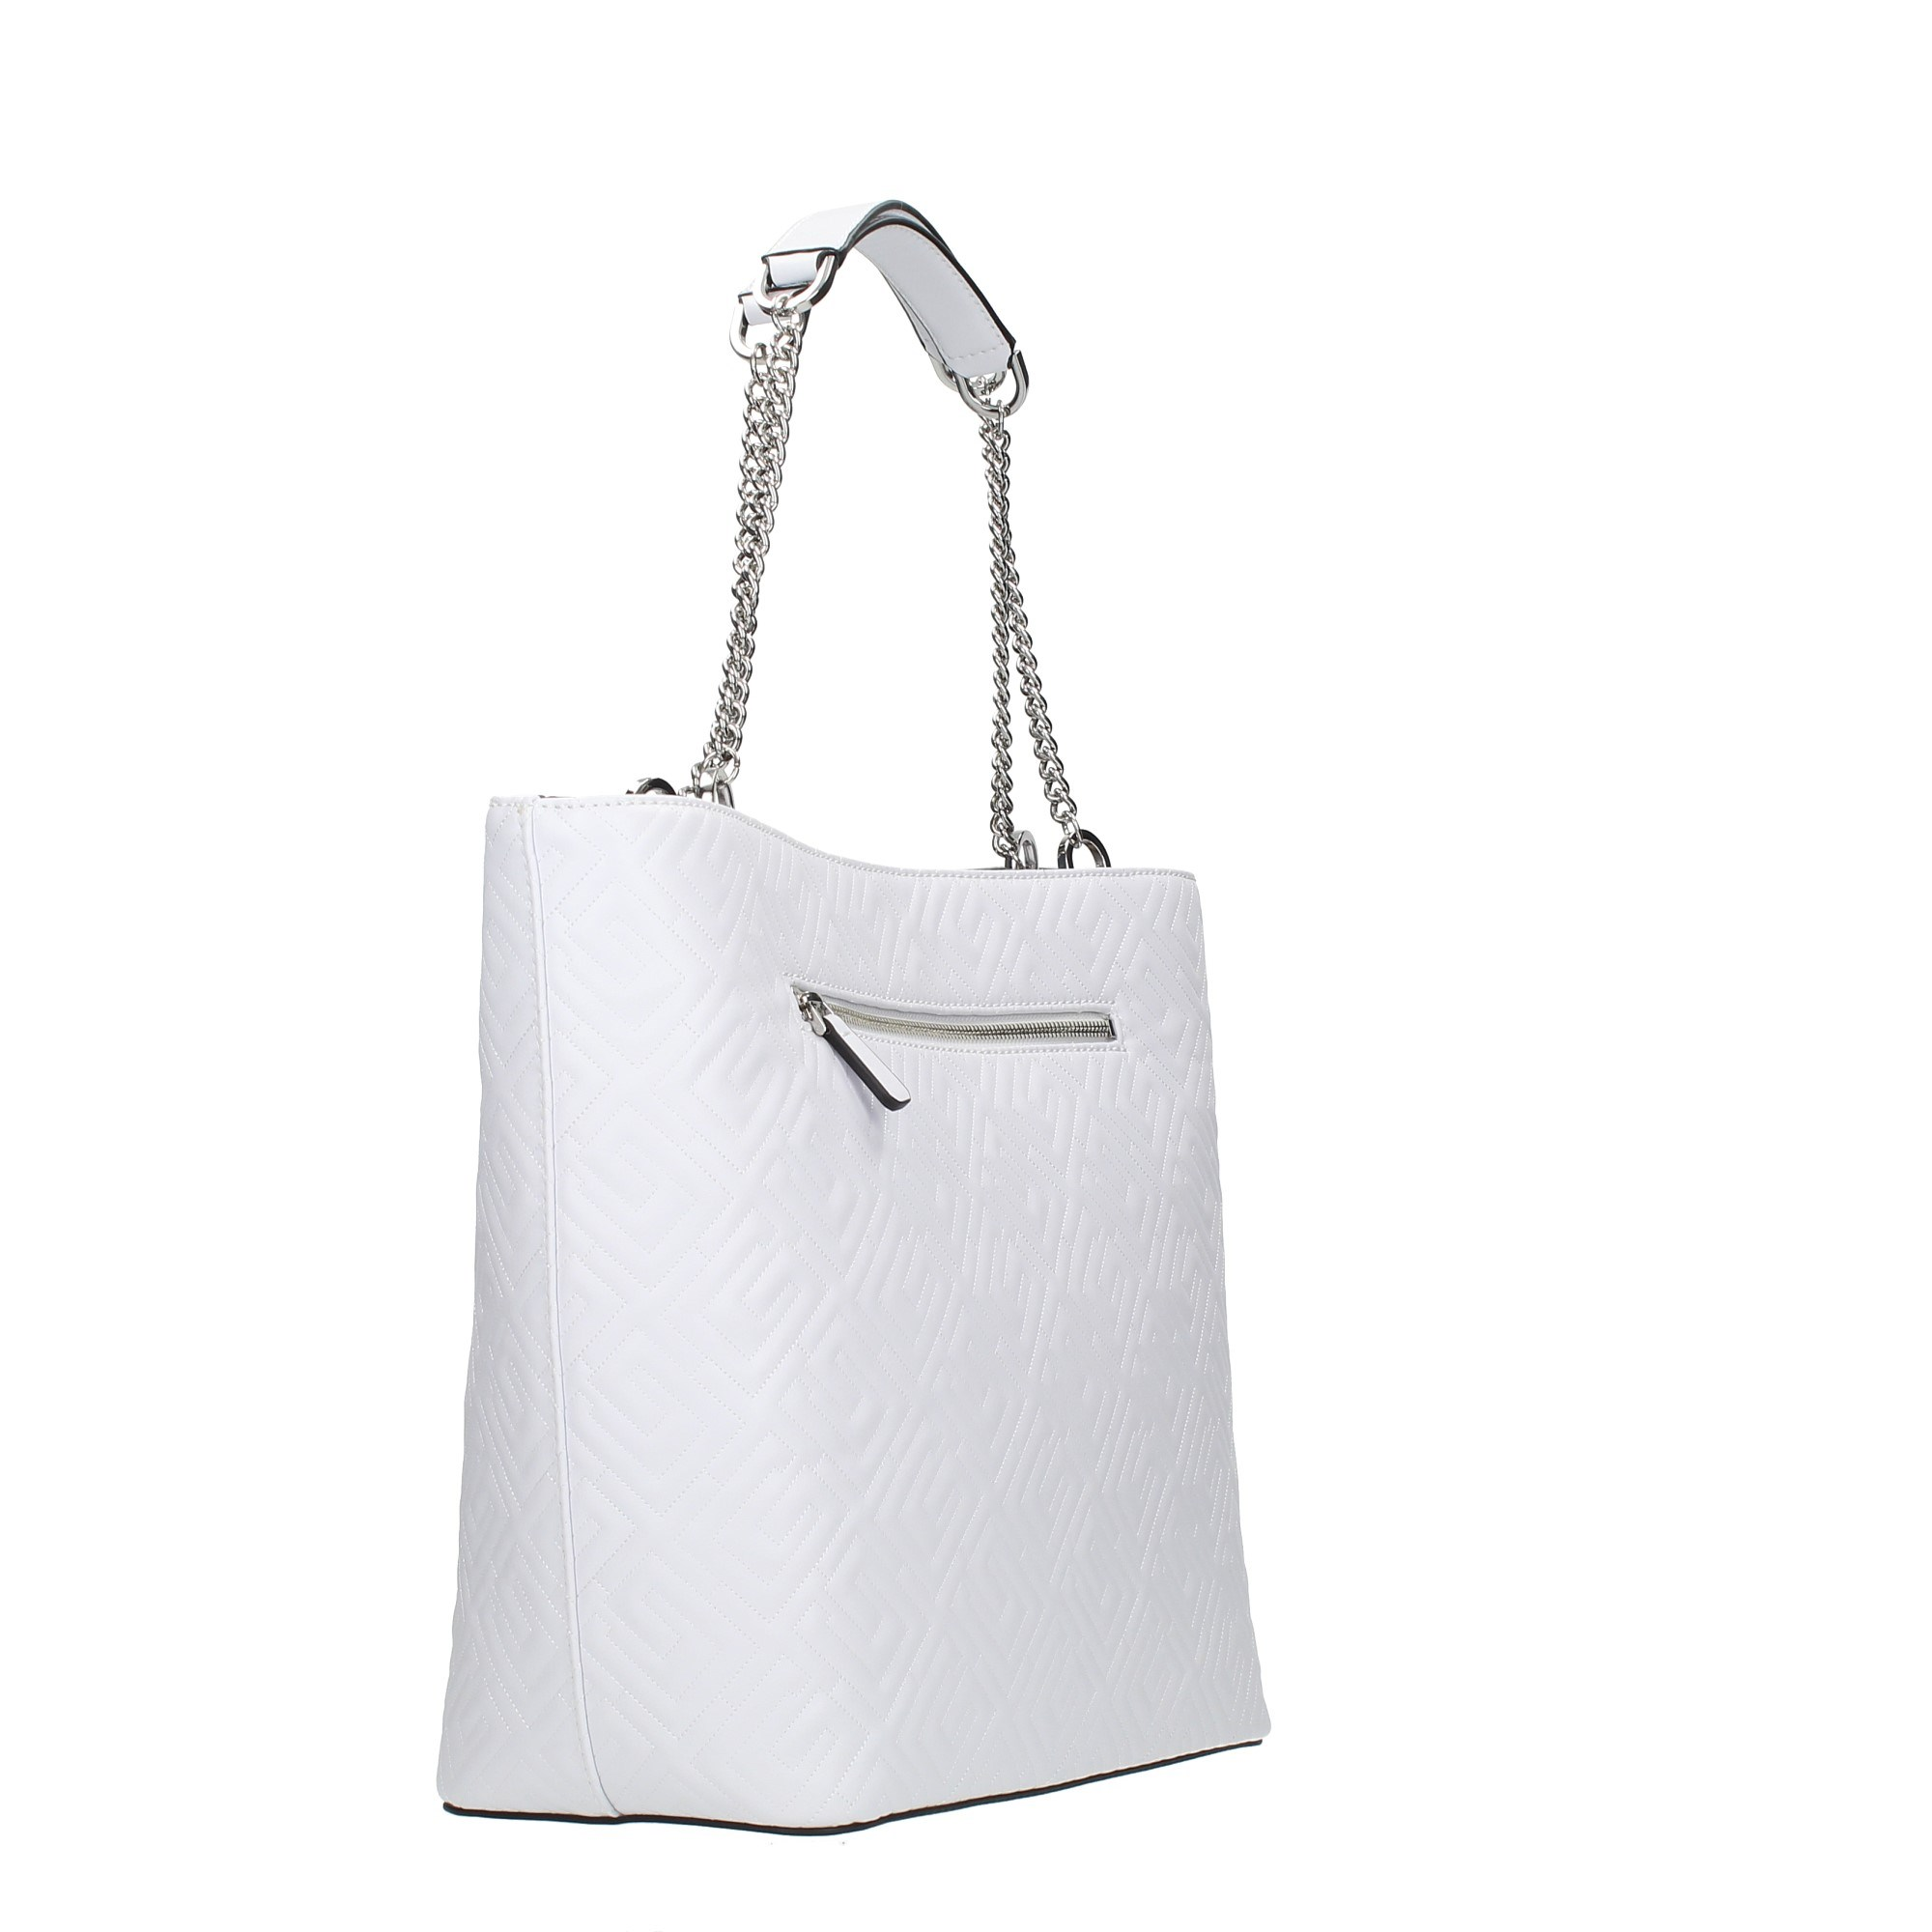 Guess Borse Accessories Women Shoulder Bags White HWQY77/38230